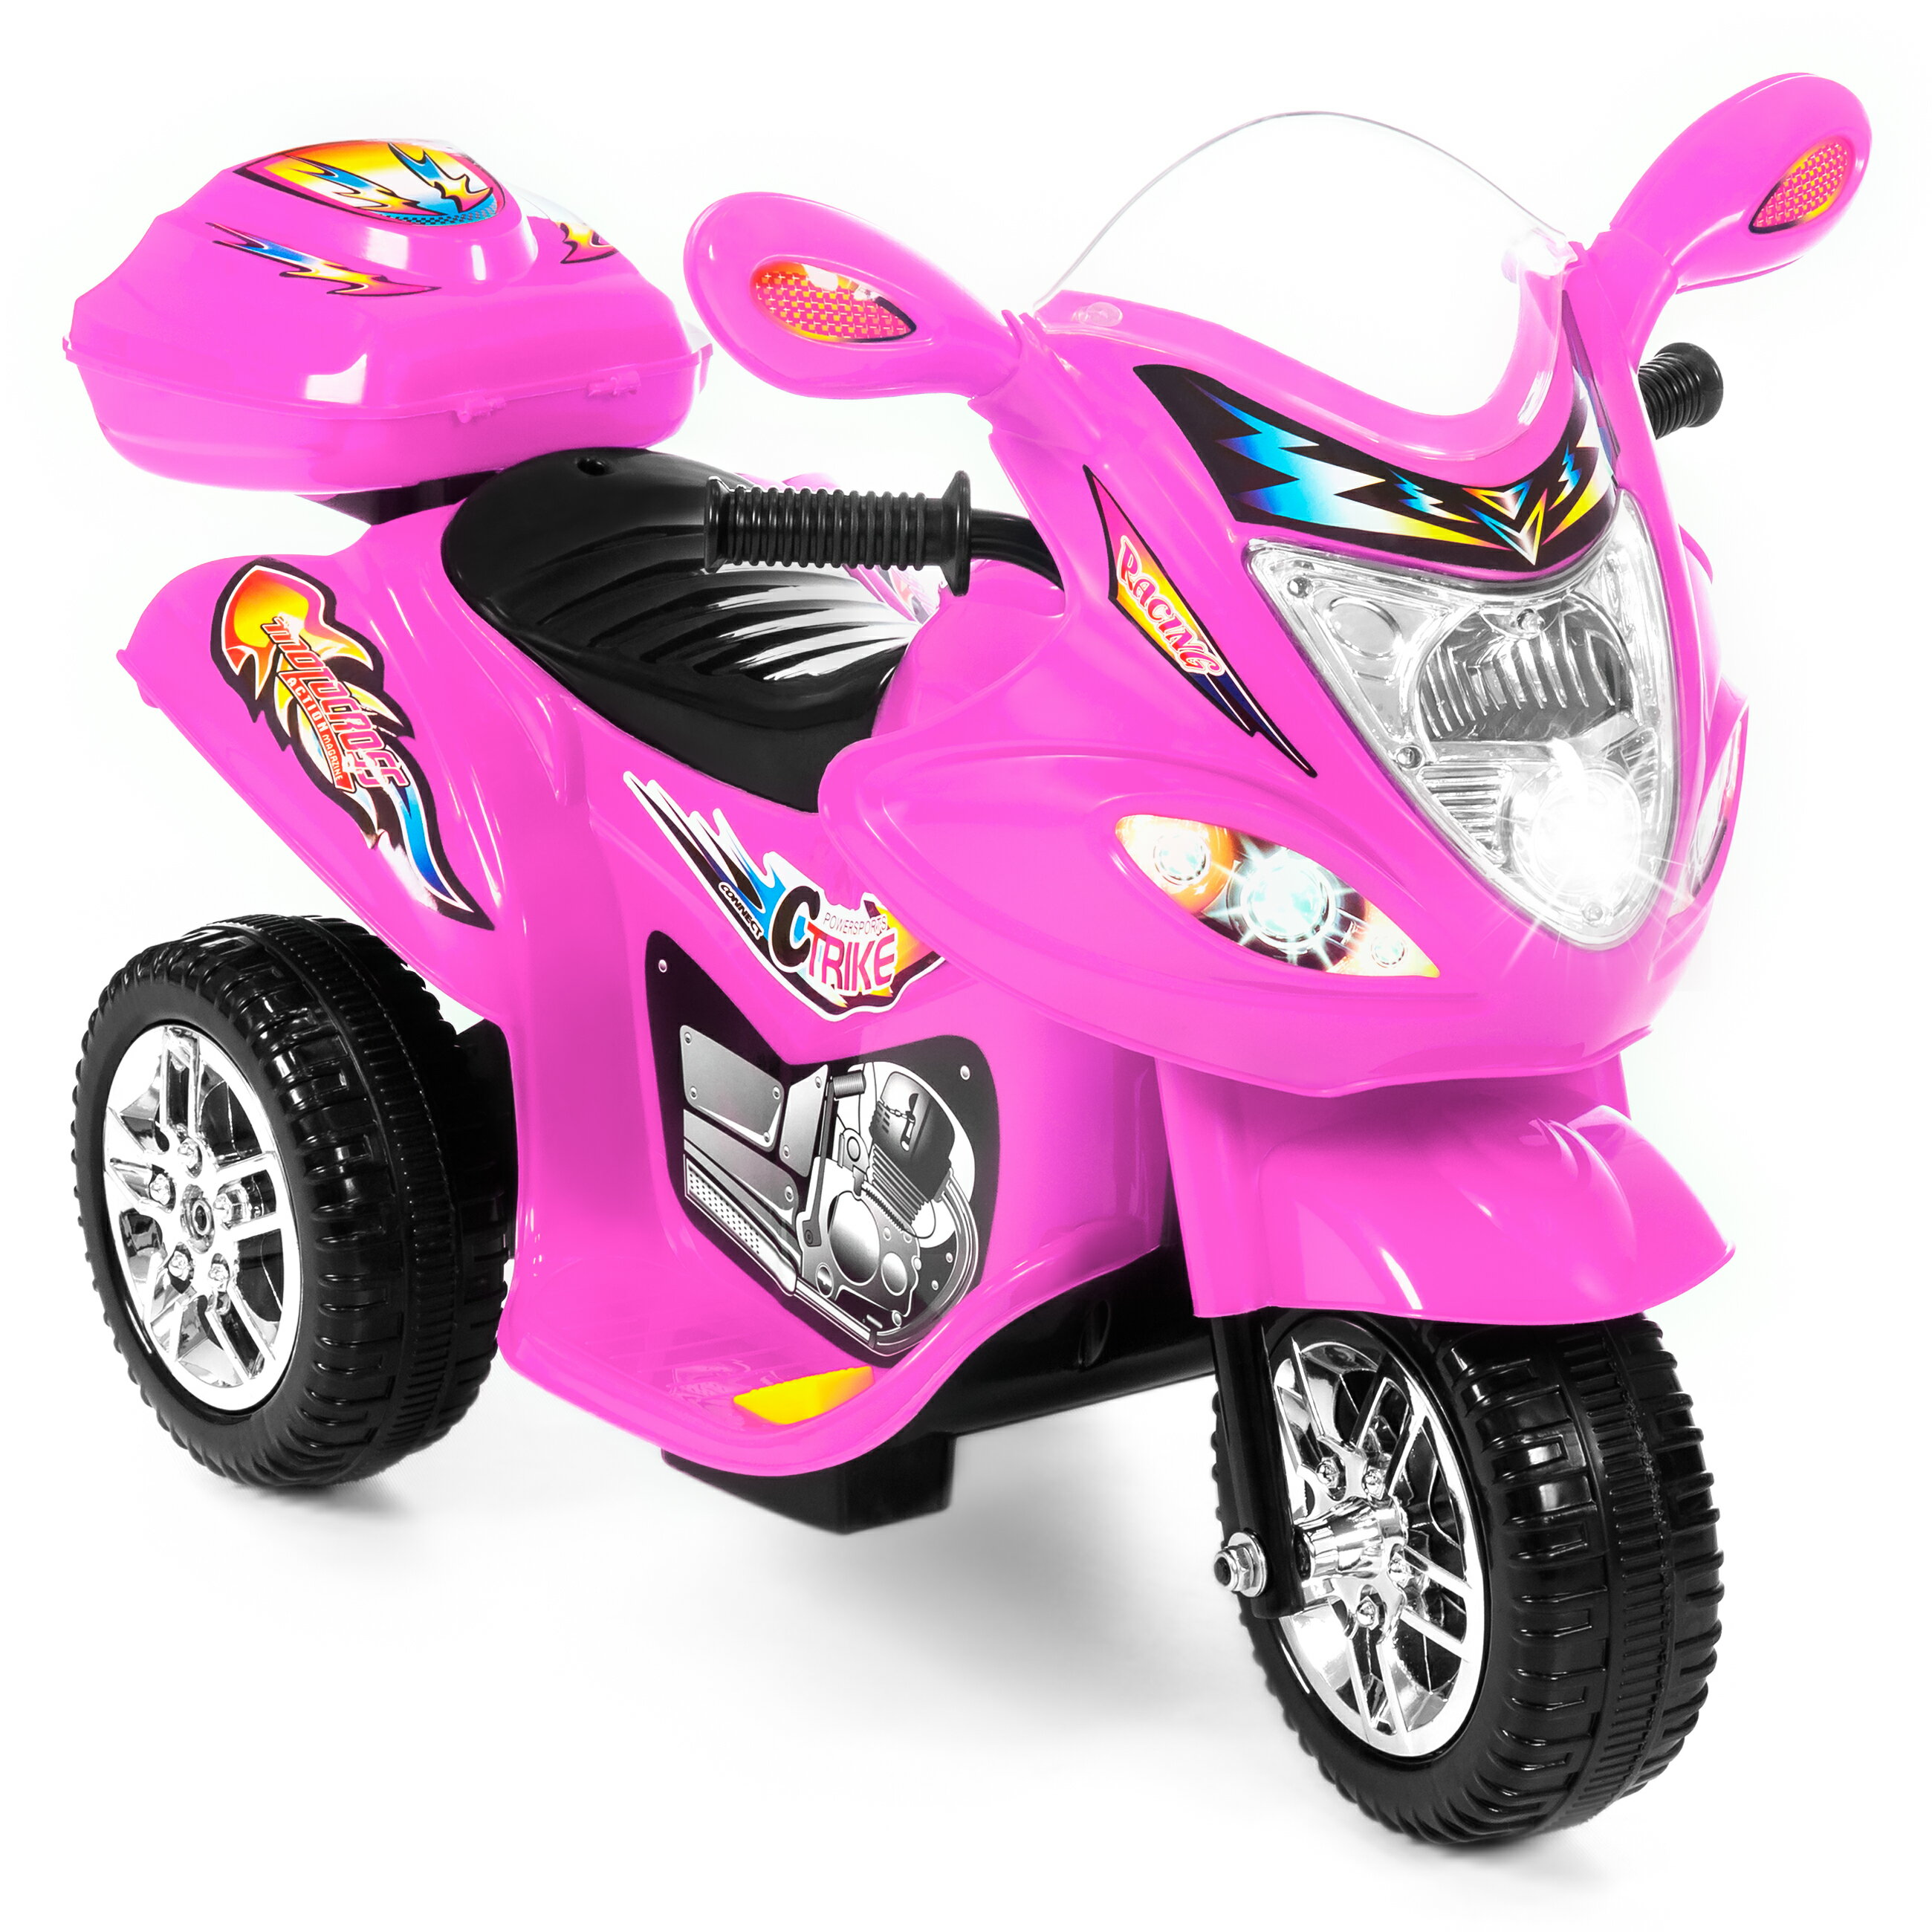 Battery Powered Ride On Toys For Toddlers >> BestChoiceProducts: Best Choice Products 6V Kids Battery Powered 3-Wheel Motorcycle Ride-On Toy ...